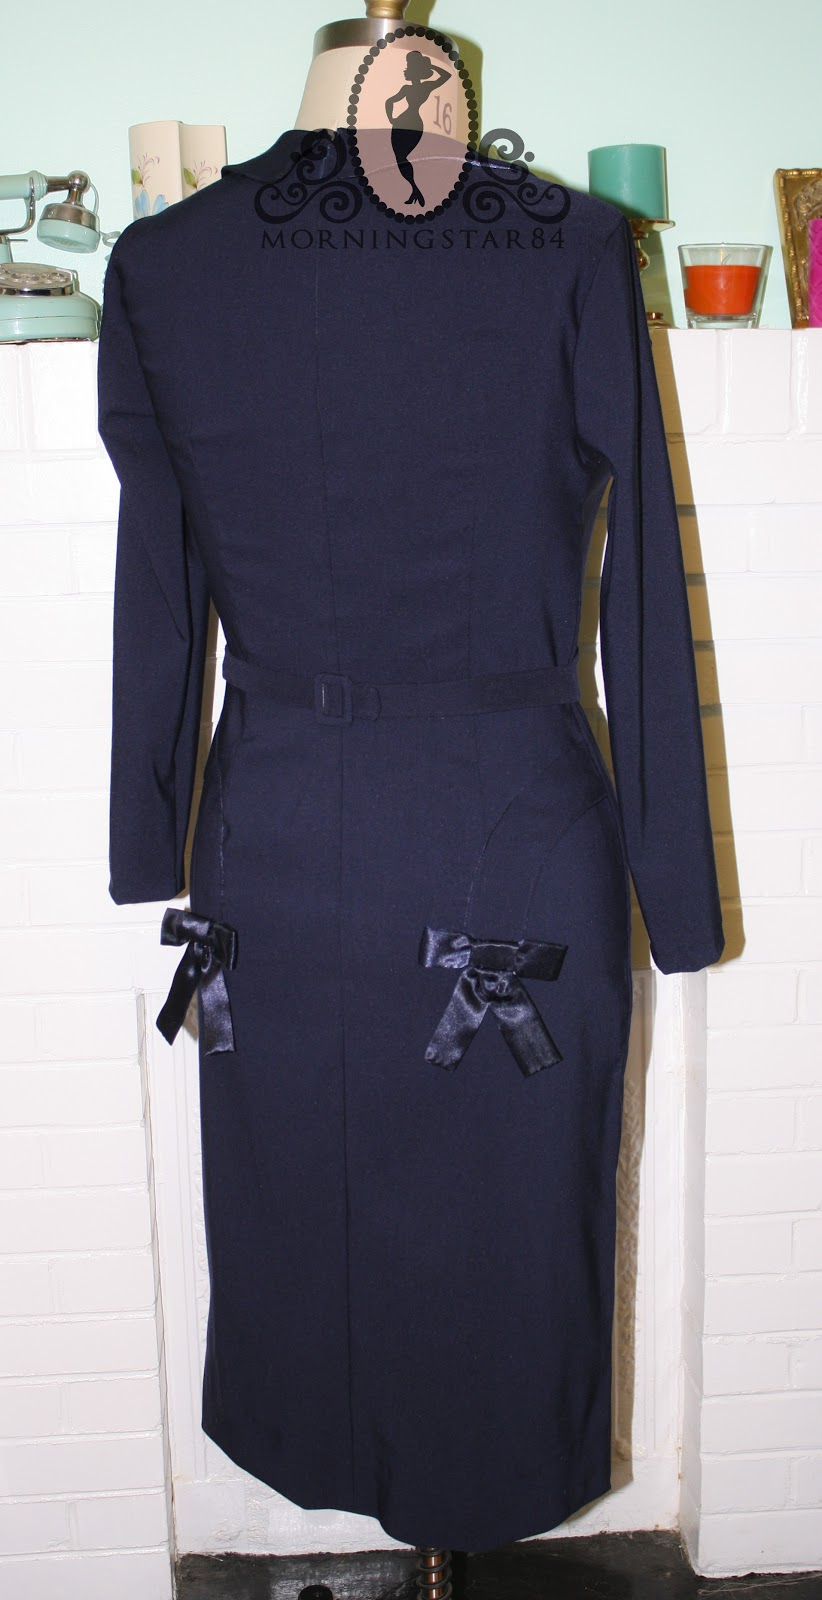 Morningstar Pinup The Girl Cant Help It Navy Blue Dress